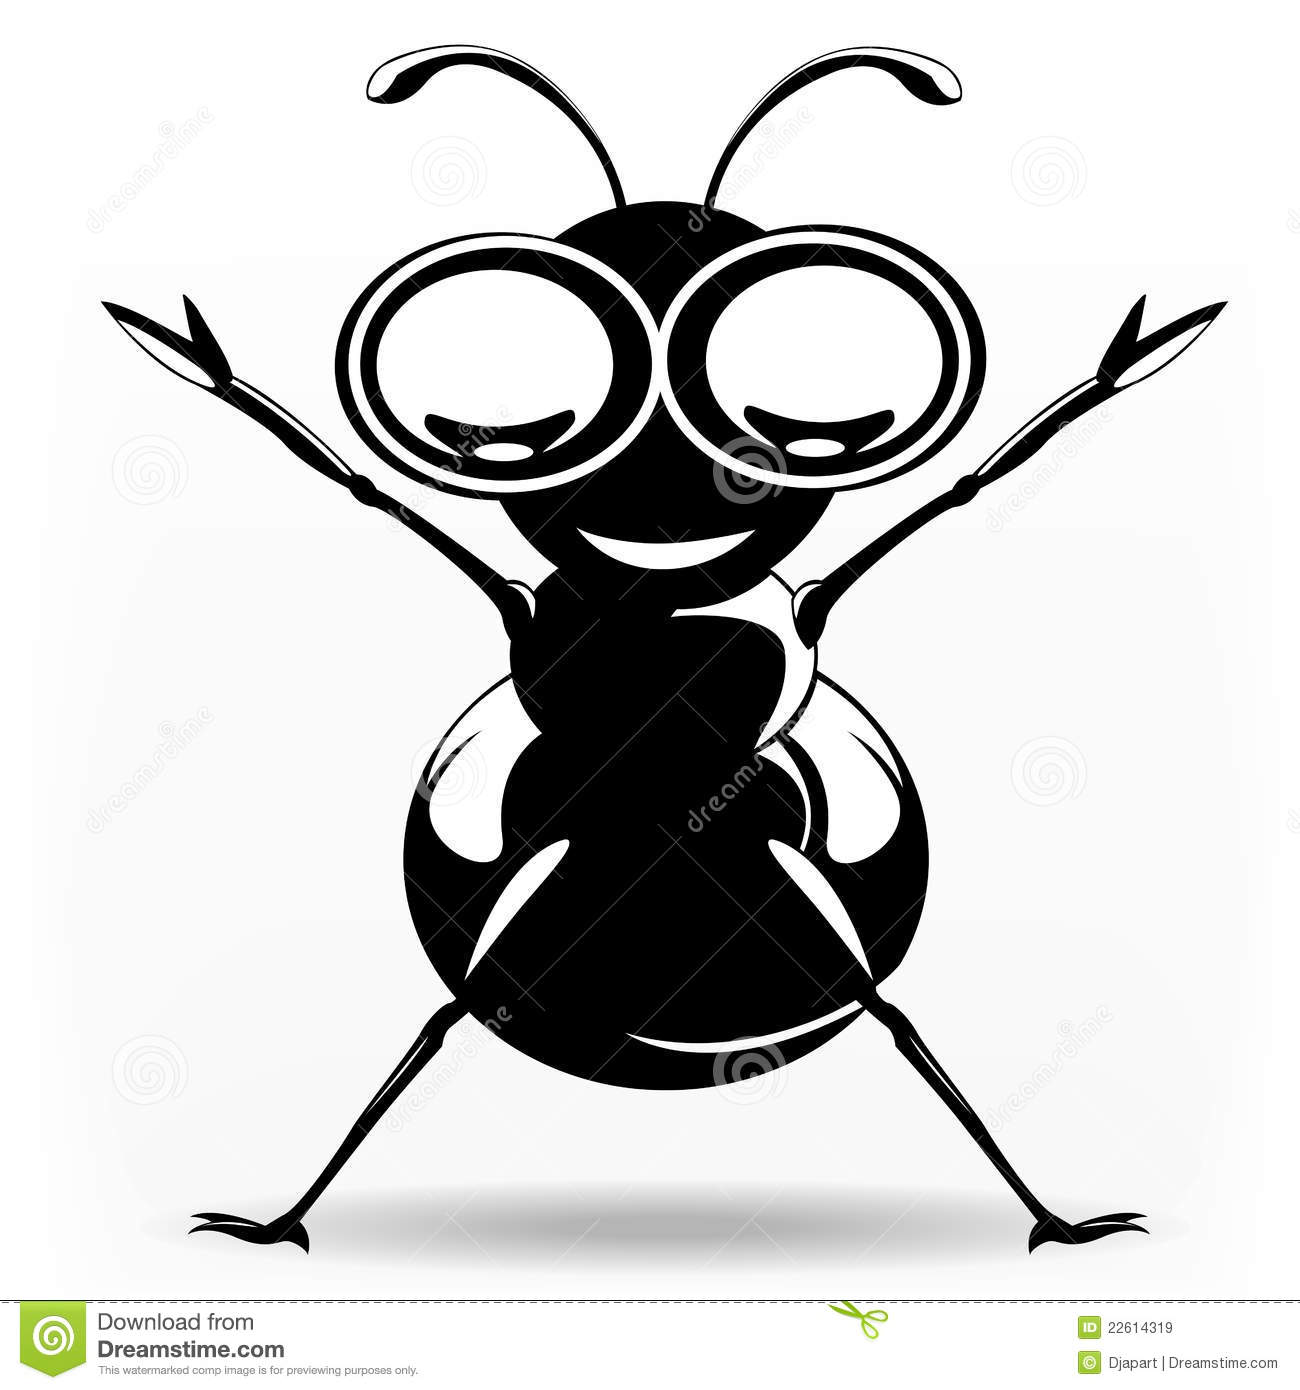 Funny black ant stock vector. Illustration of hand ...